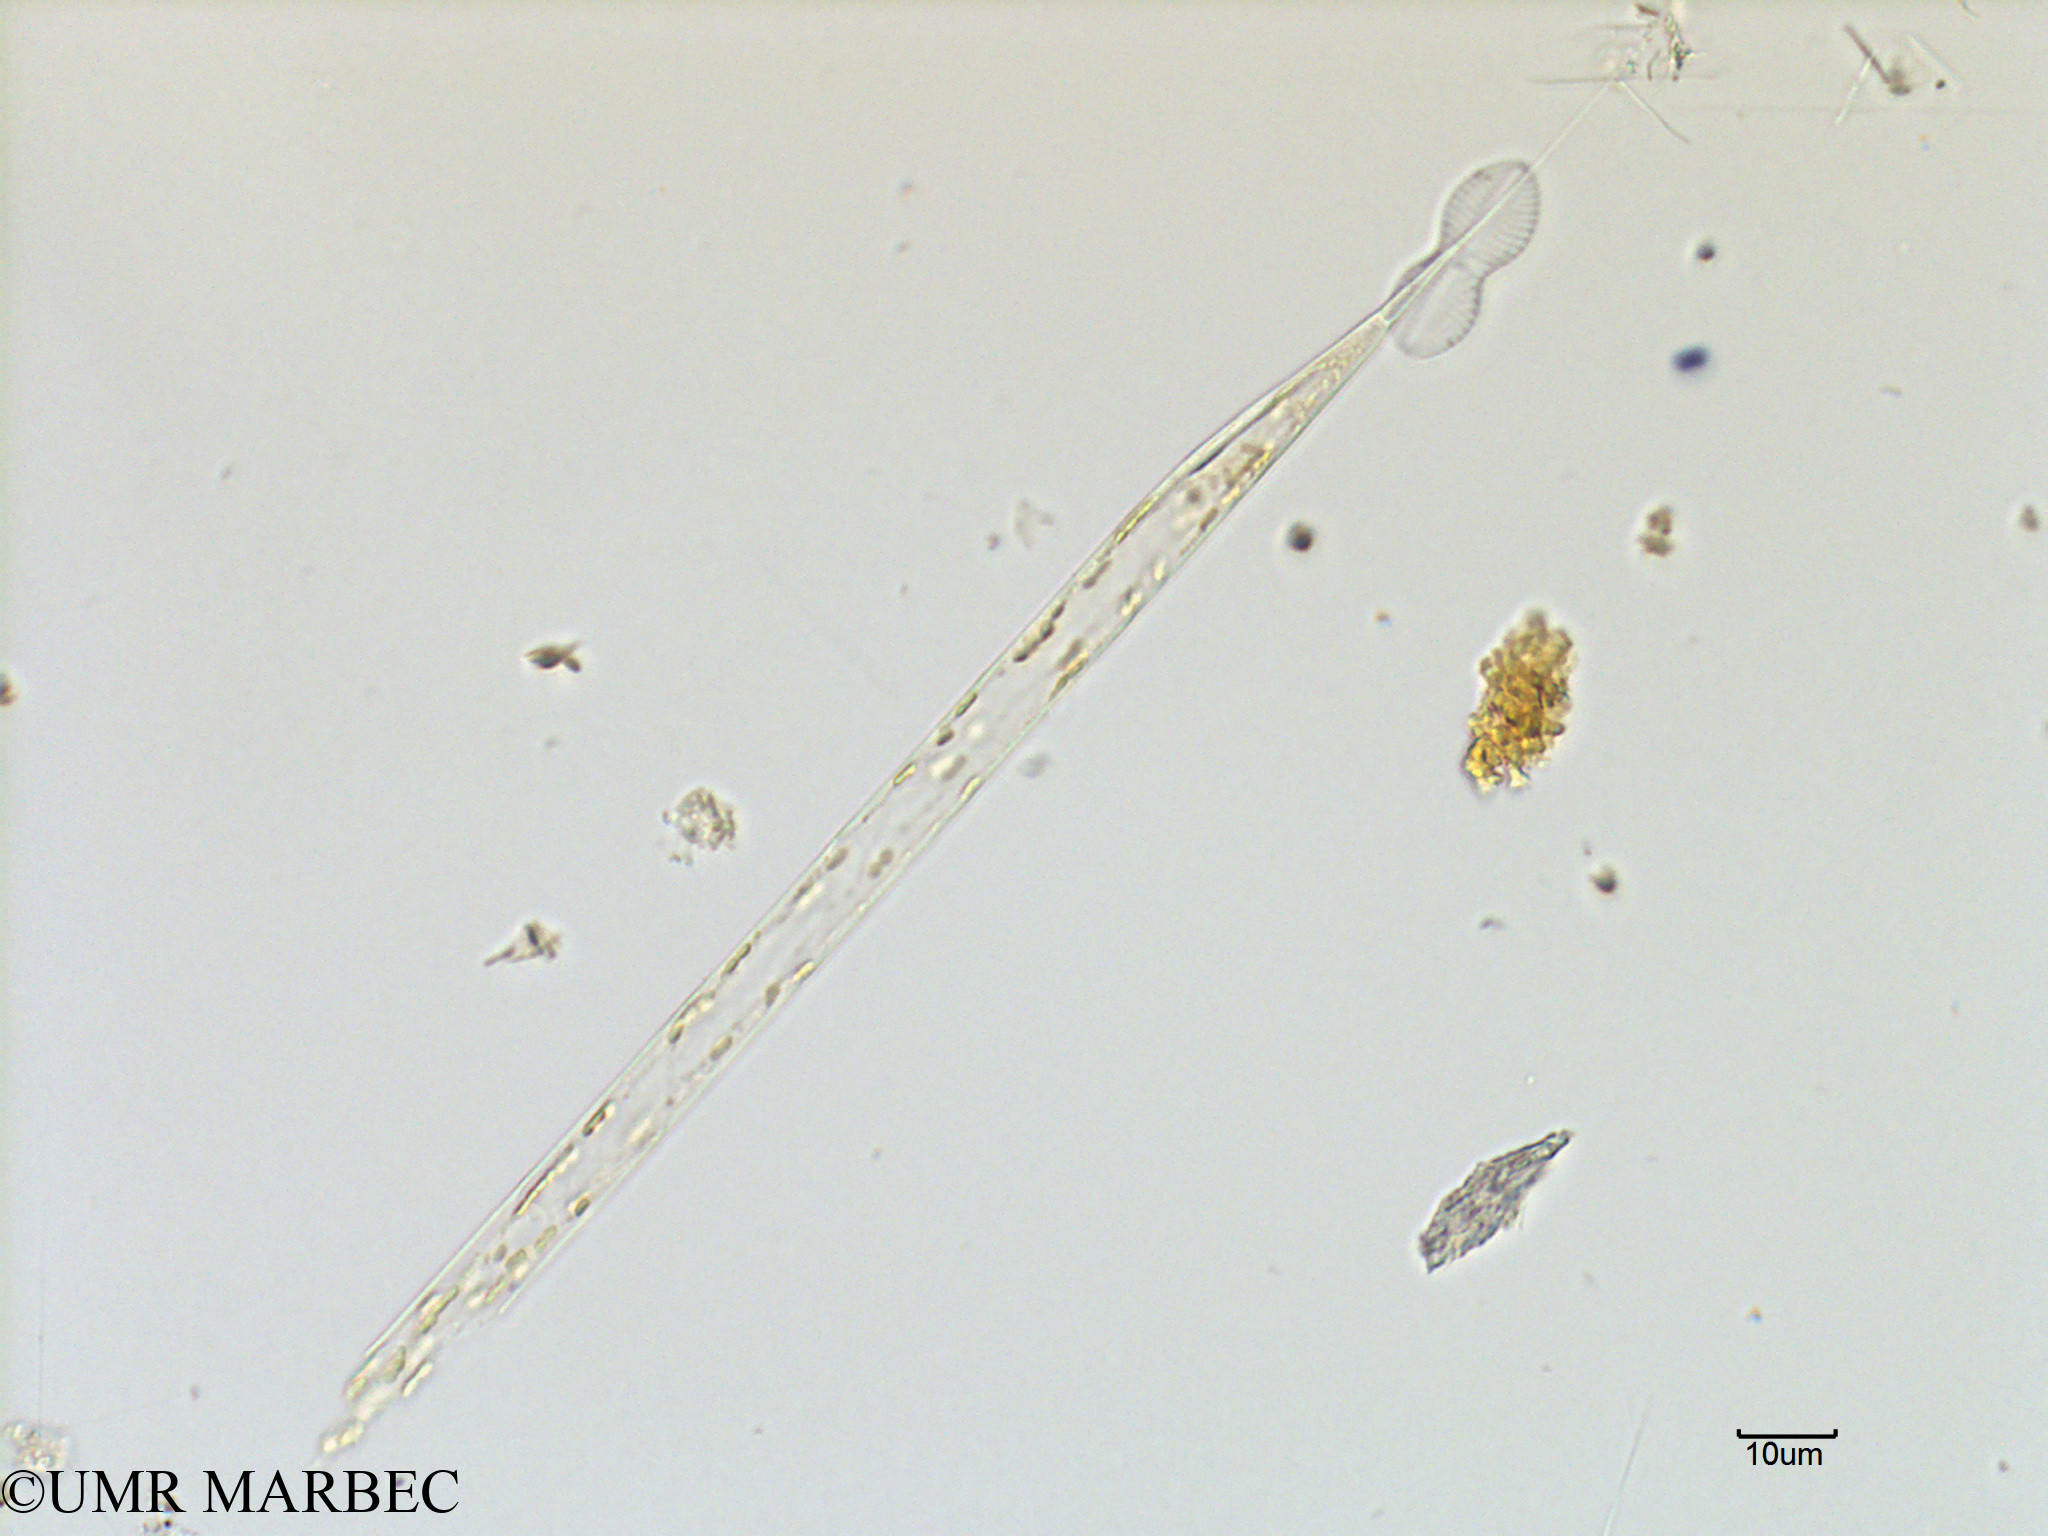 phyto/Scattered_Islands/mayotte_lagoon/SIREME May 2016/Rhizosolenia hebetata (MAY3_rhizosolenia-2).tif(copy).jpg